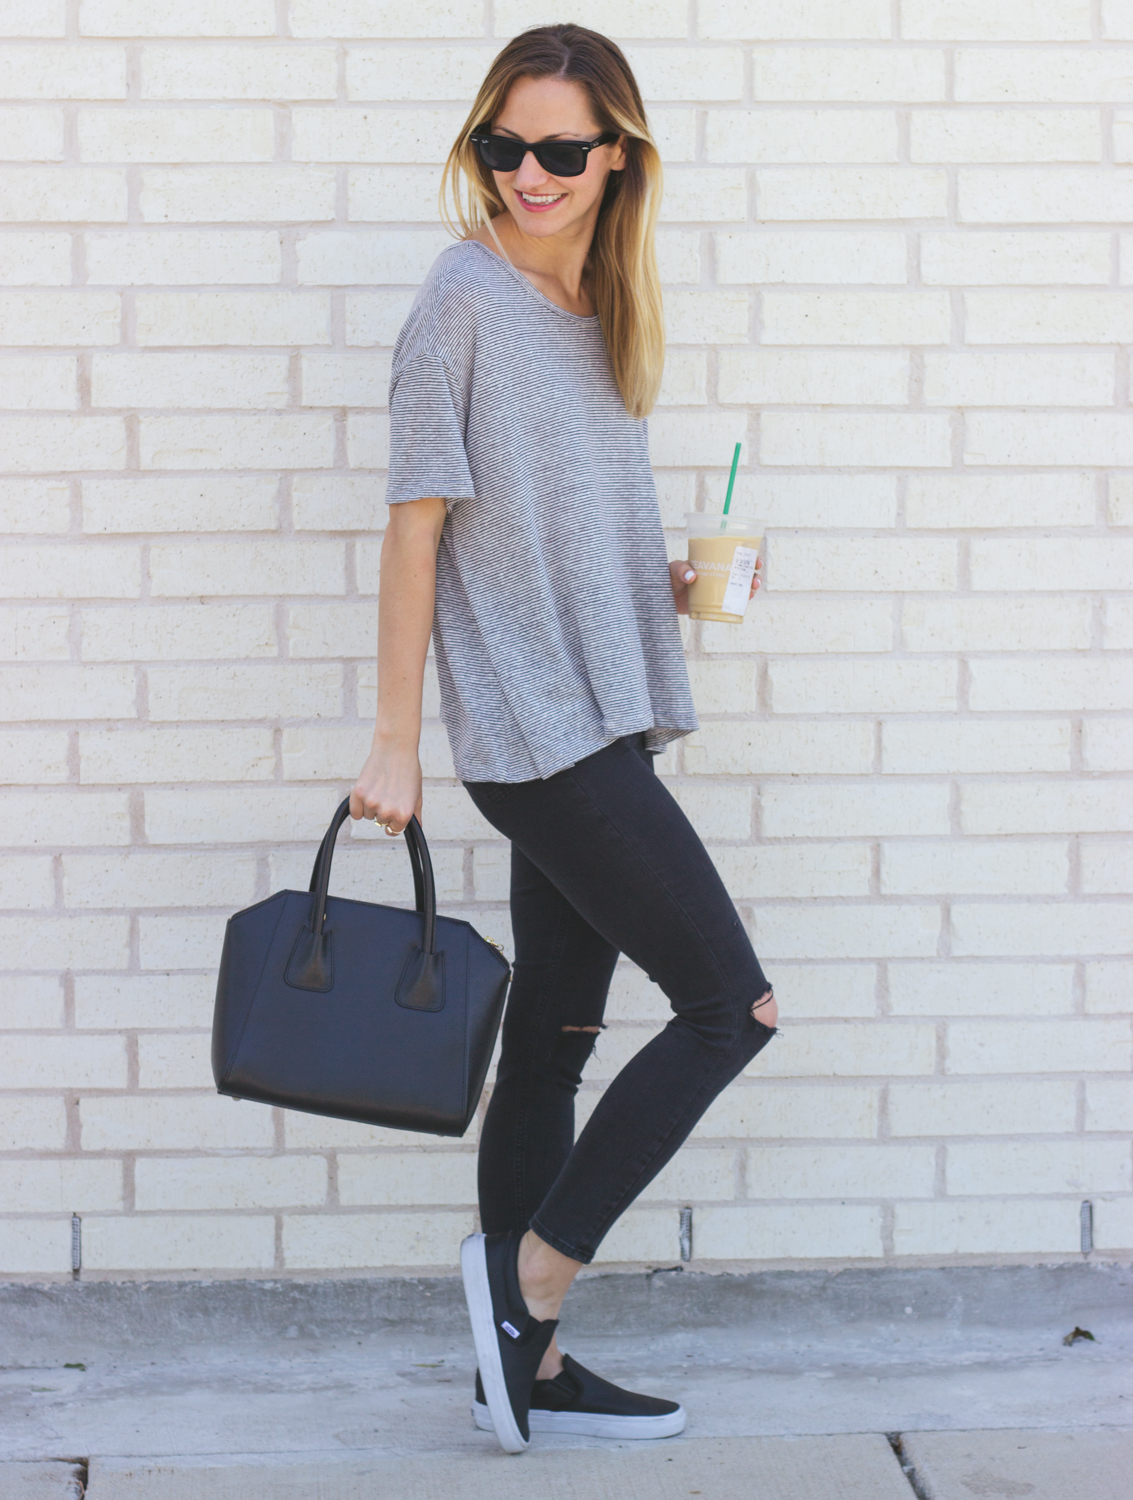 Casual Tee Slip On Sneakers Livvyland Austin Fashion And Style Blogger